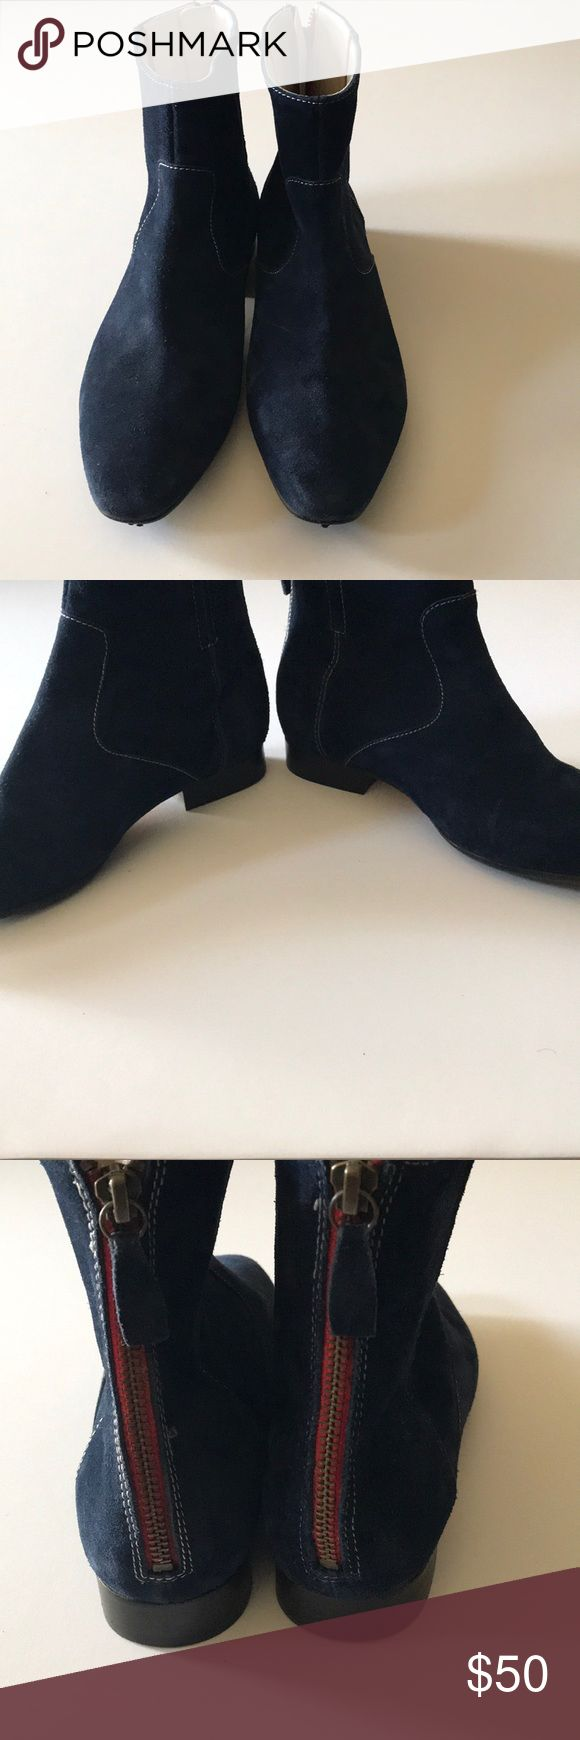 NWOT Boden Suede Booties Blue Suede with zipper closure in back and almond toed. 1.5- 2in heel Boden Shoes Ankle Boots & Booties